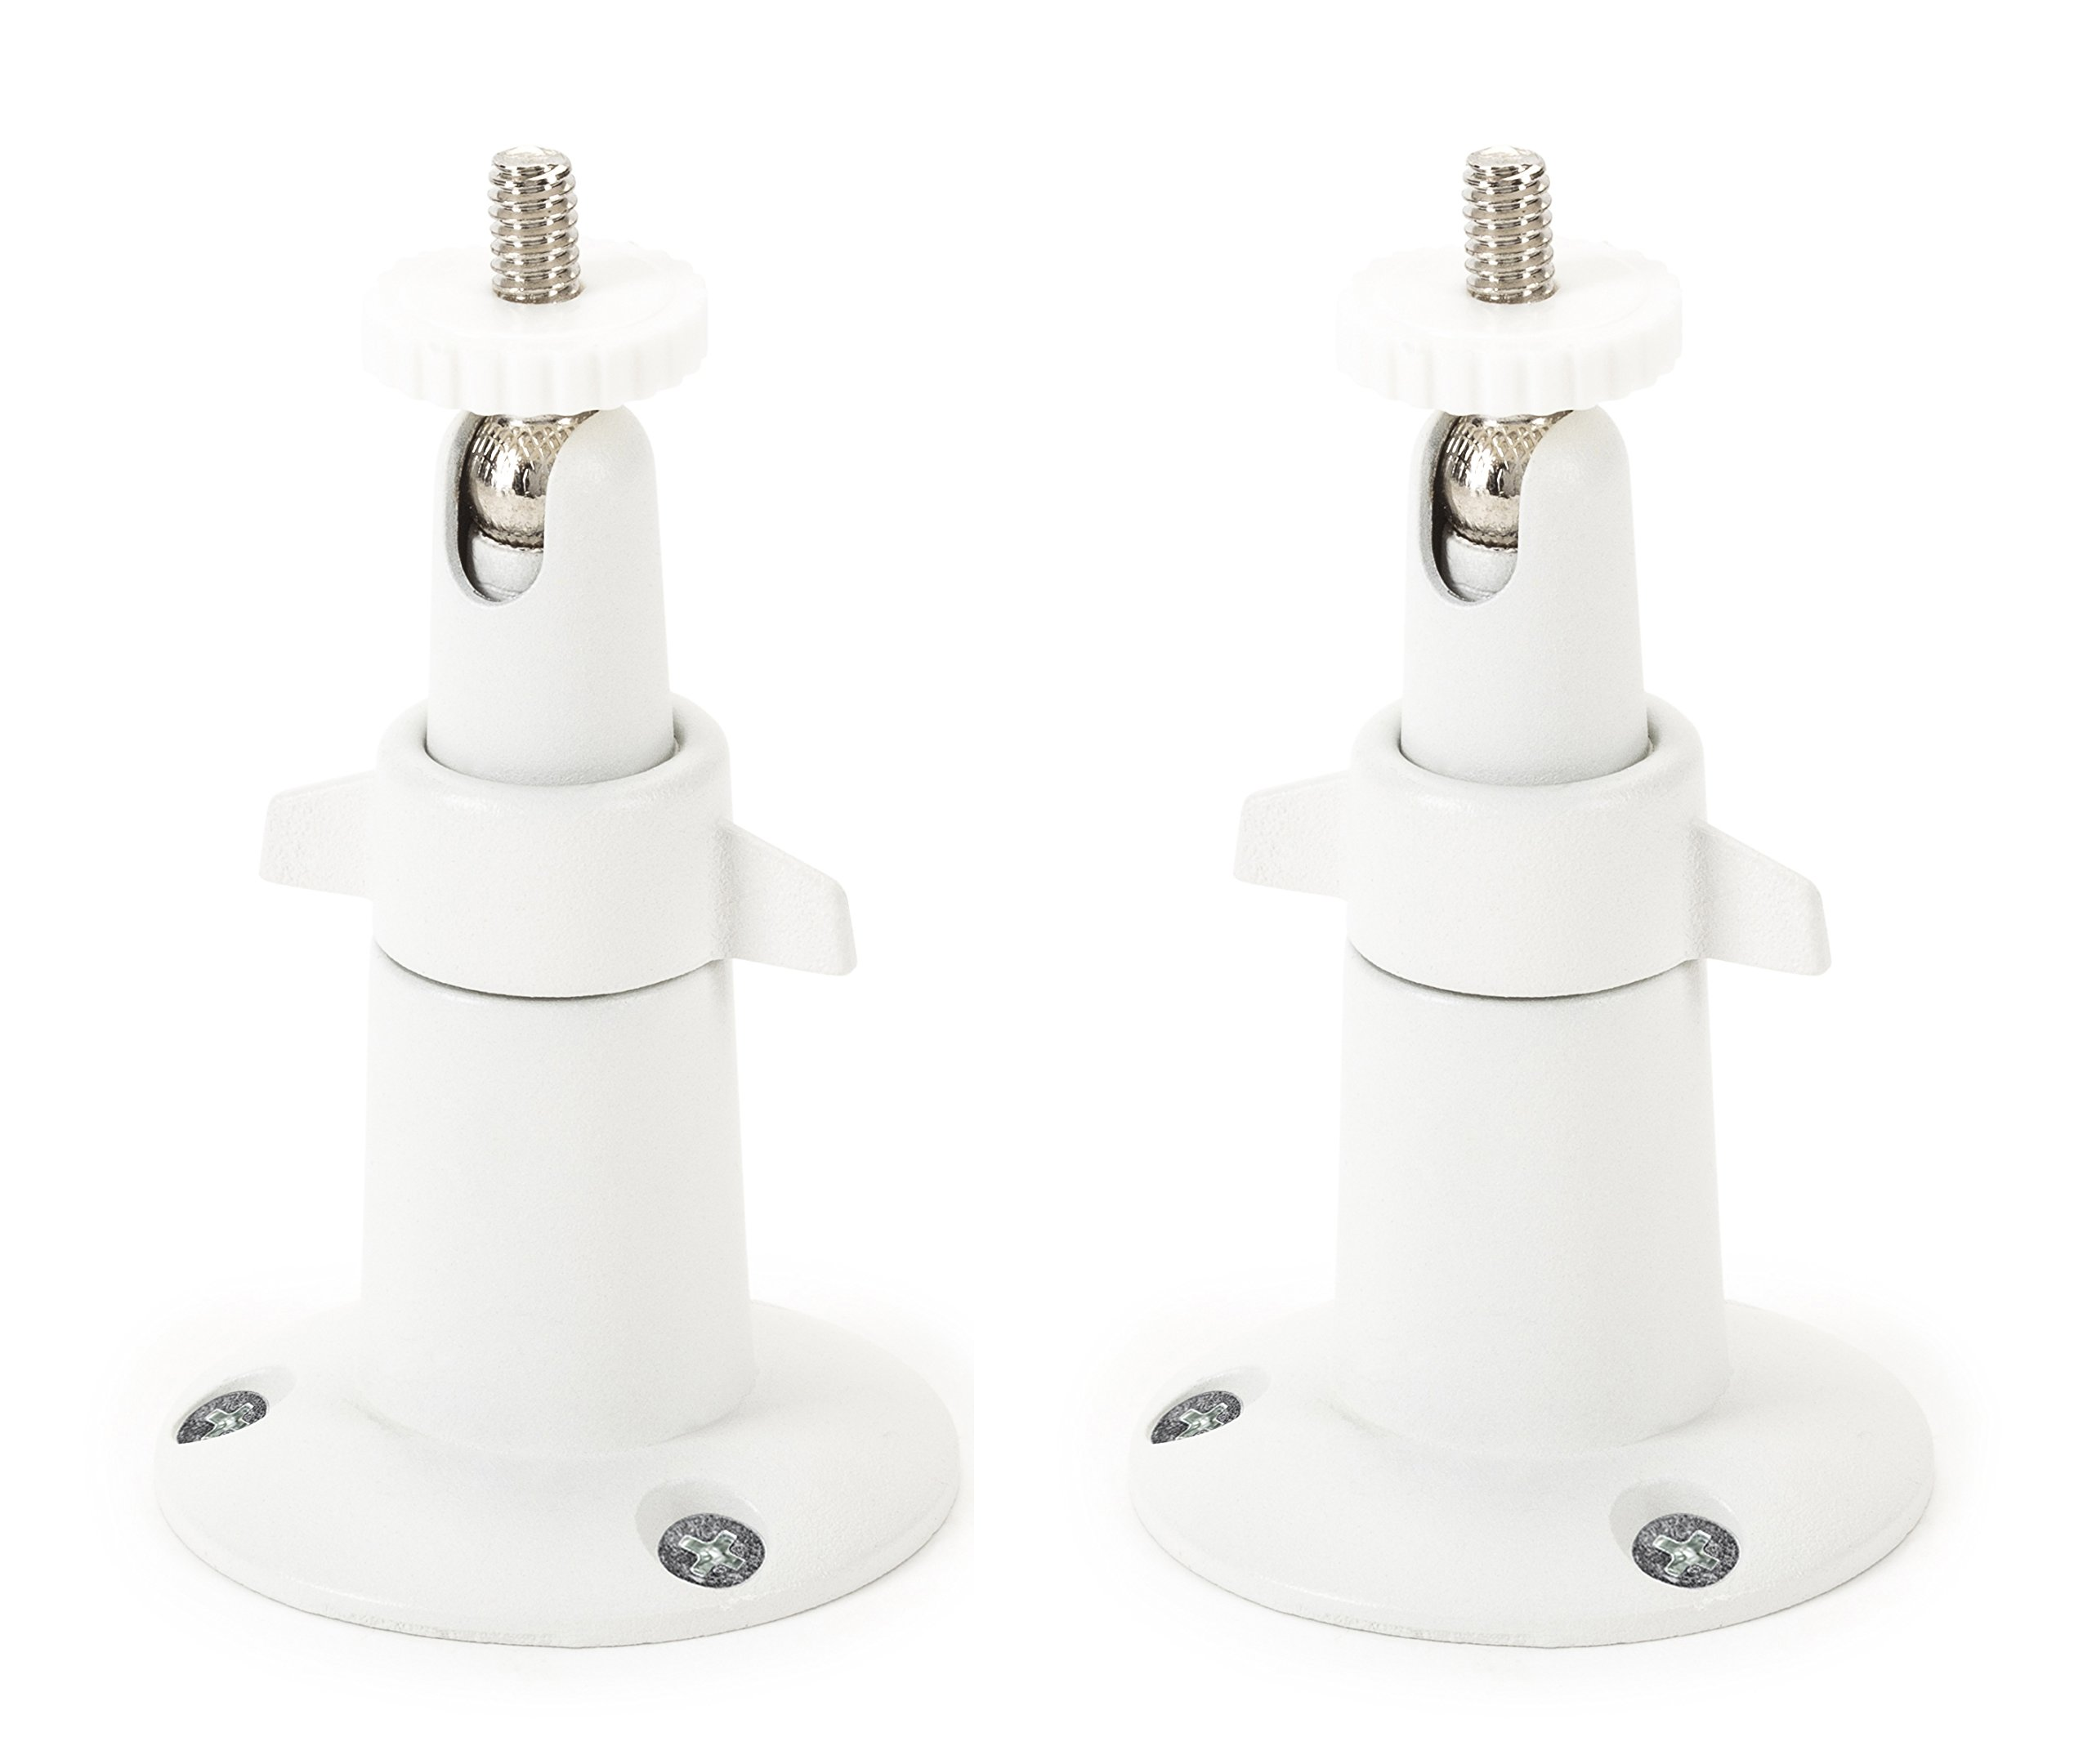 Security Wall Mount- Adjustable Indoor/Outdoor Mount for Arlo, Arlo Pro and Other Compatible Models by Dropcessories (2 Pack - Metal, White)